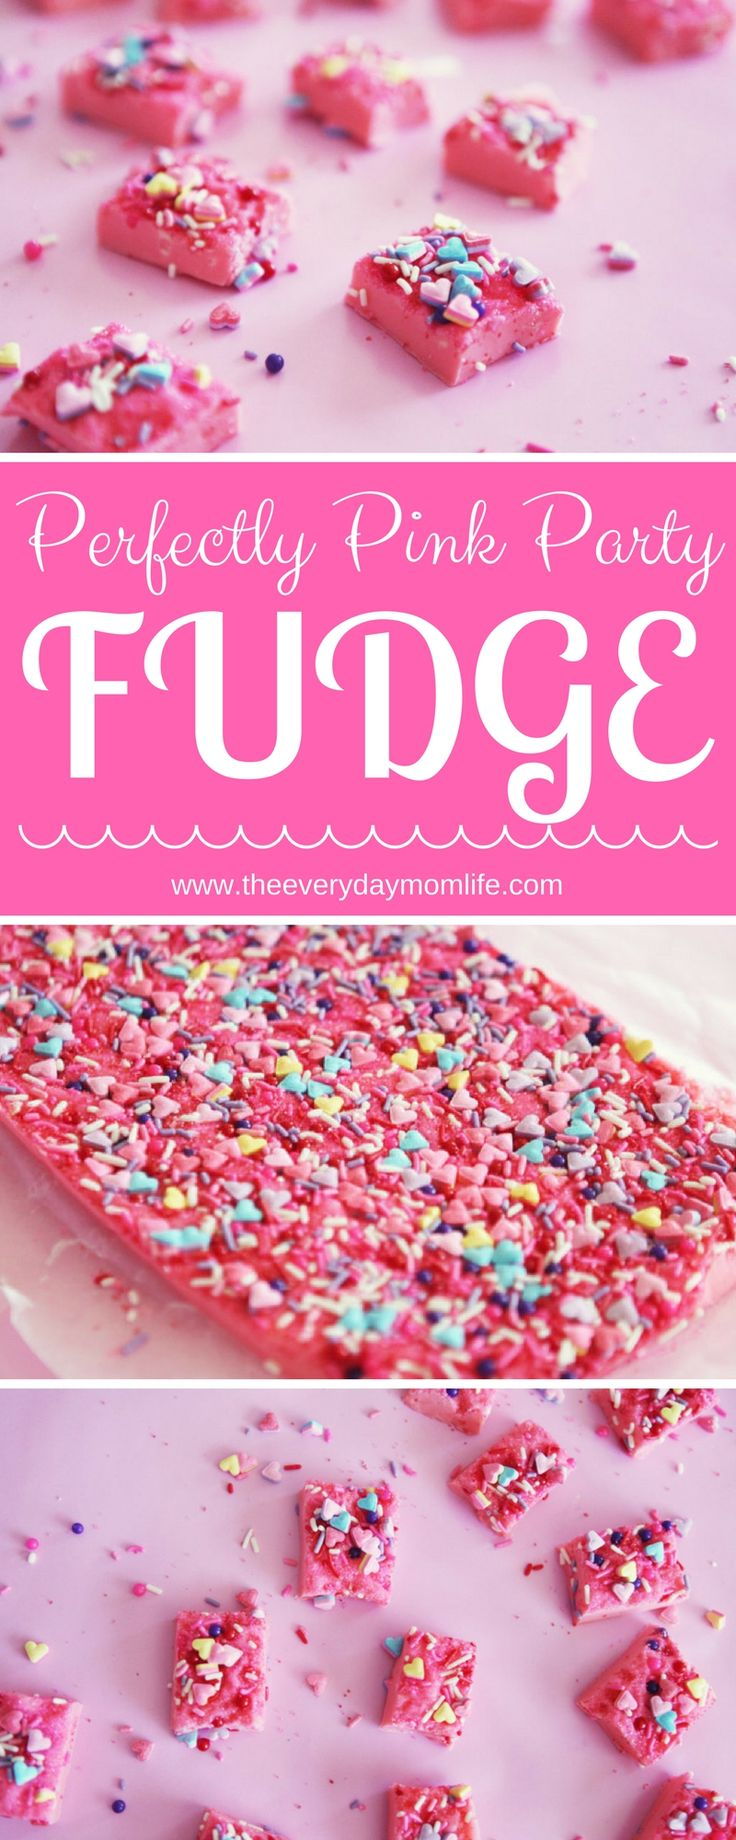 Try our perfectly pink party FUDGE for your next princess party, Valentine's Day, unicorn party or any sort of party where yummy pinkness is part of the fun.